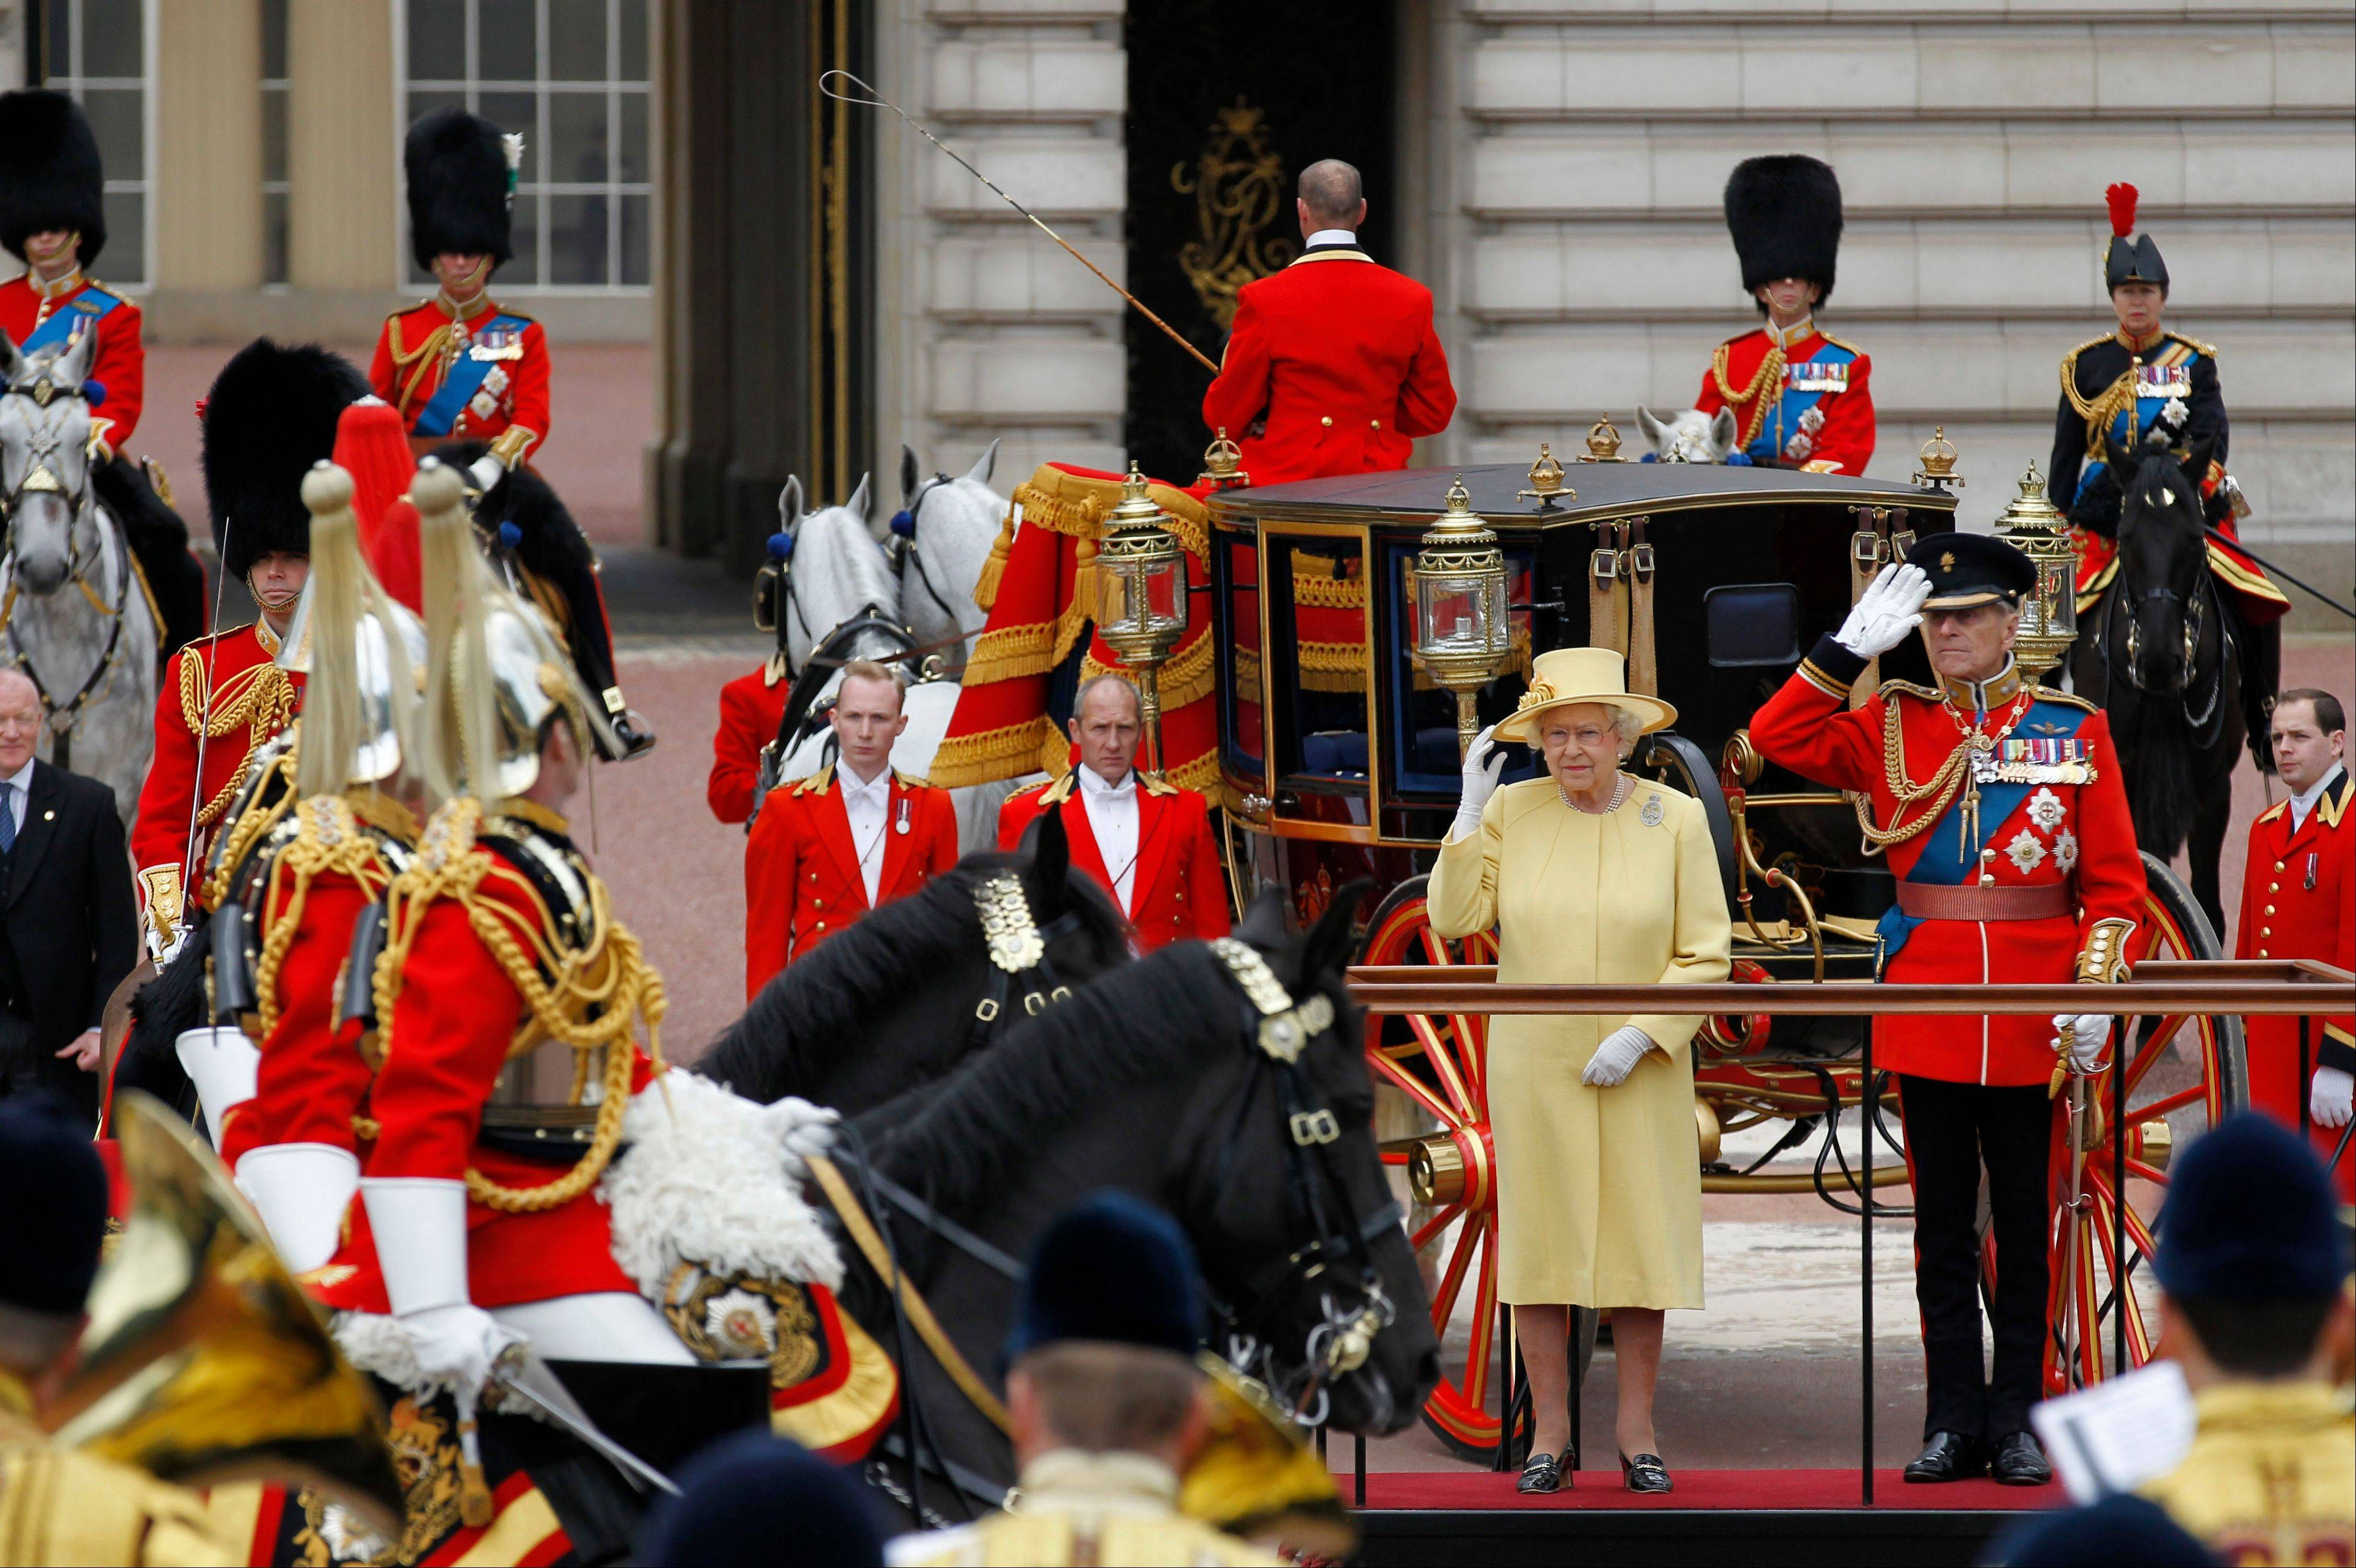 Buckingham Palace accounts showed Thursday that Queen Elizabeth II will receive a 5 per cent income boost following record portfolio profits.